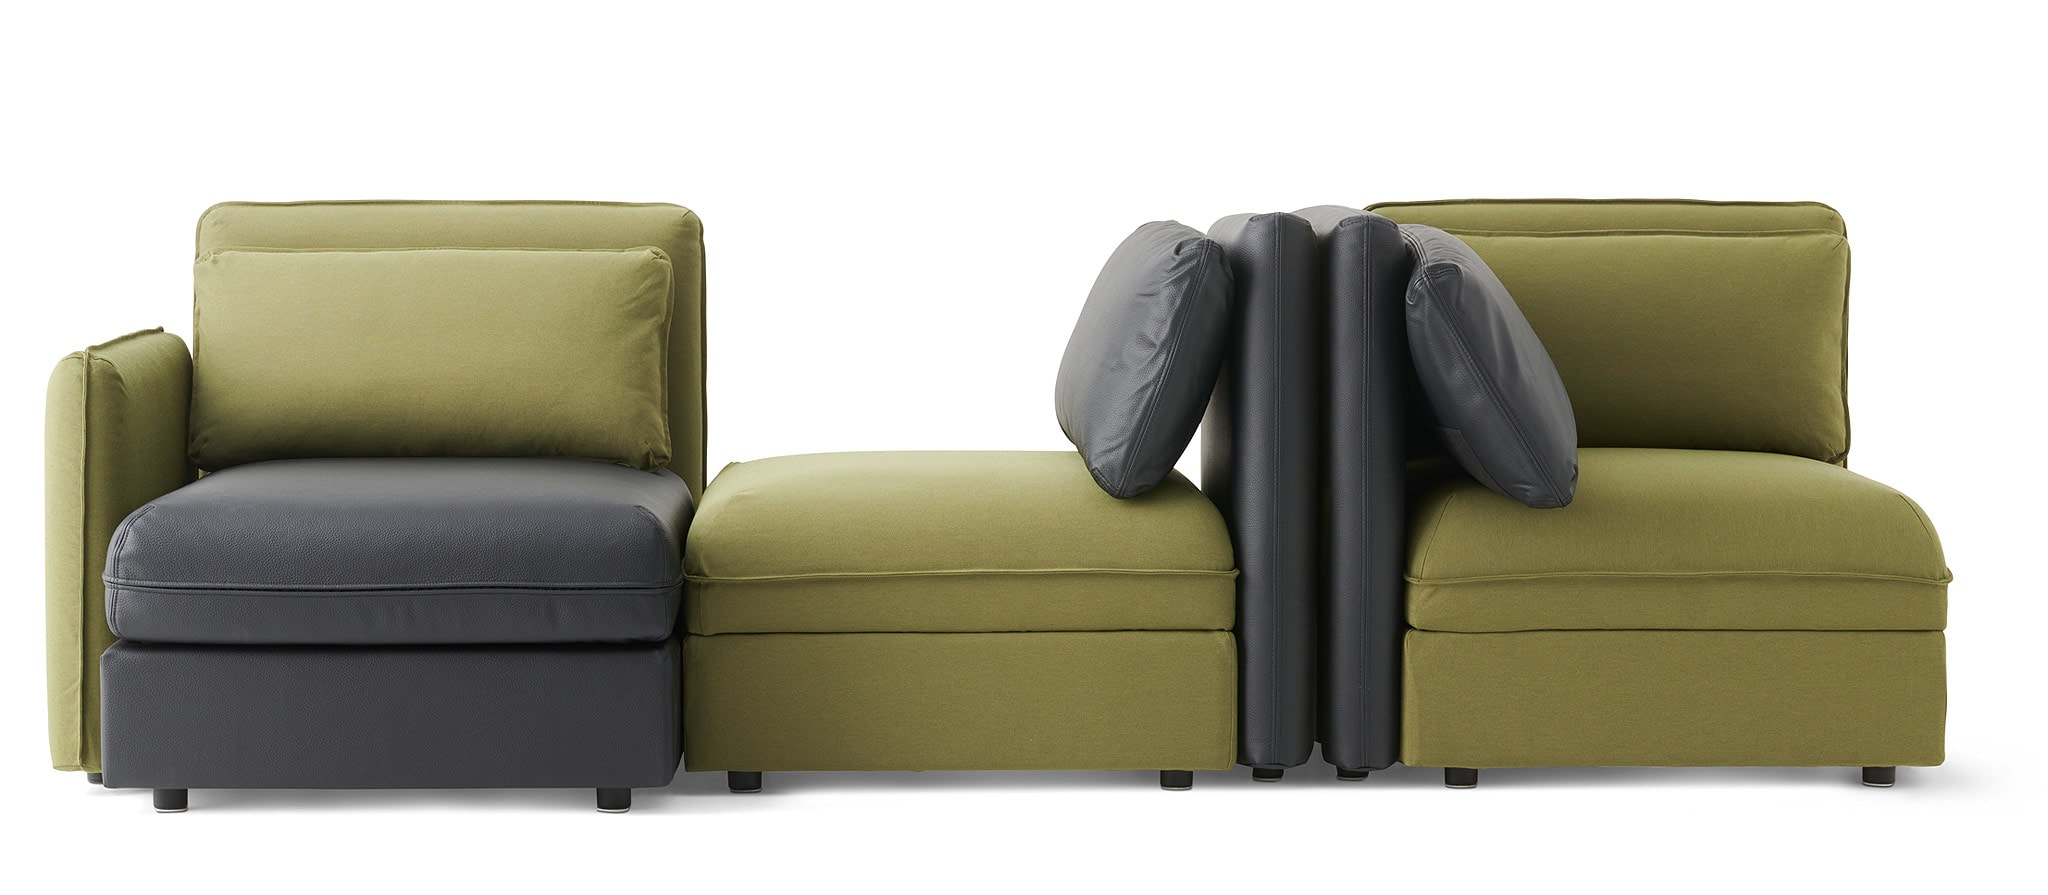 This combination of olive green and black VALLENTUNA modules can form a  dynamic sofa that sits